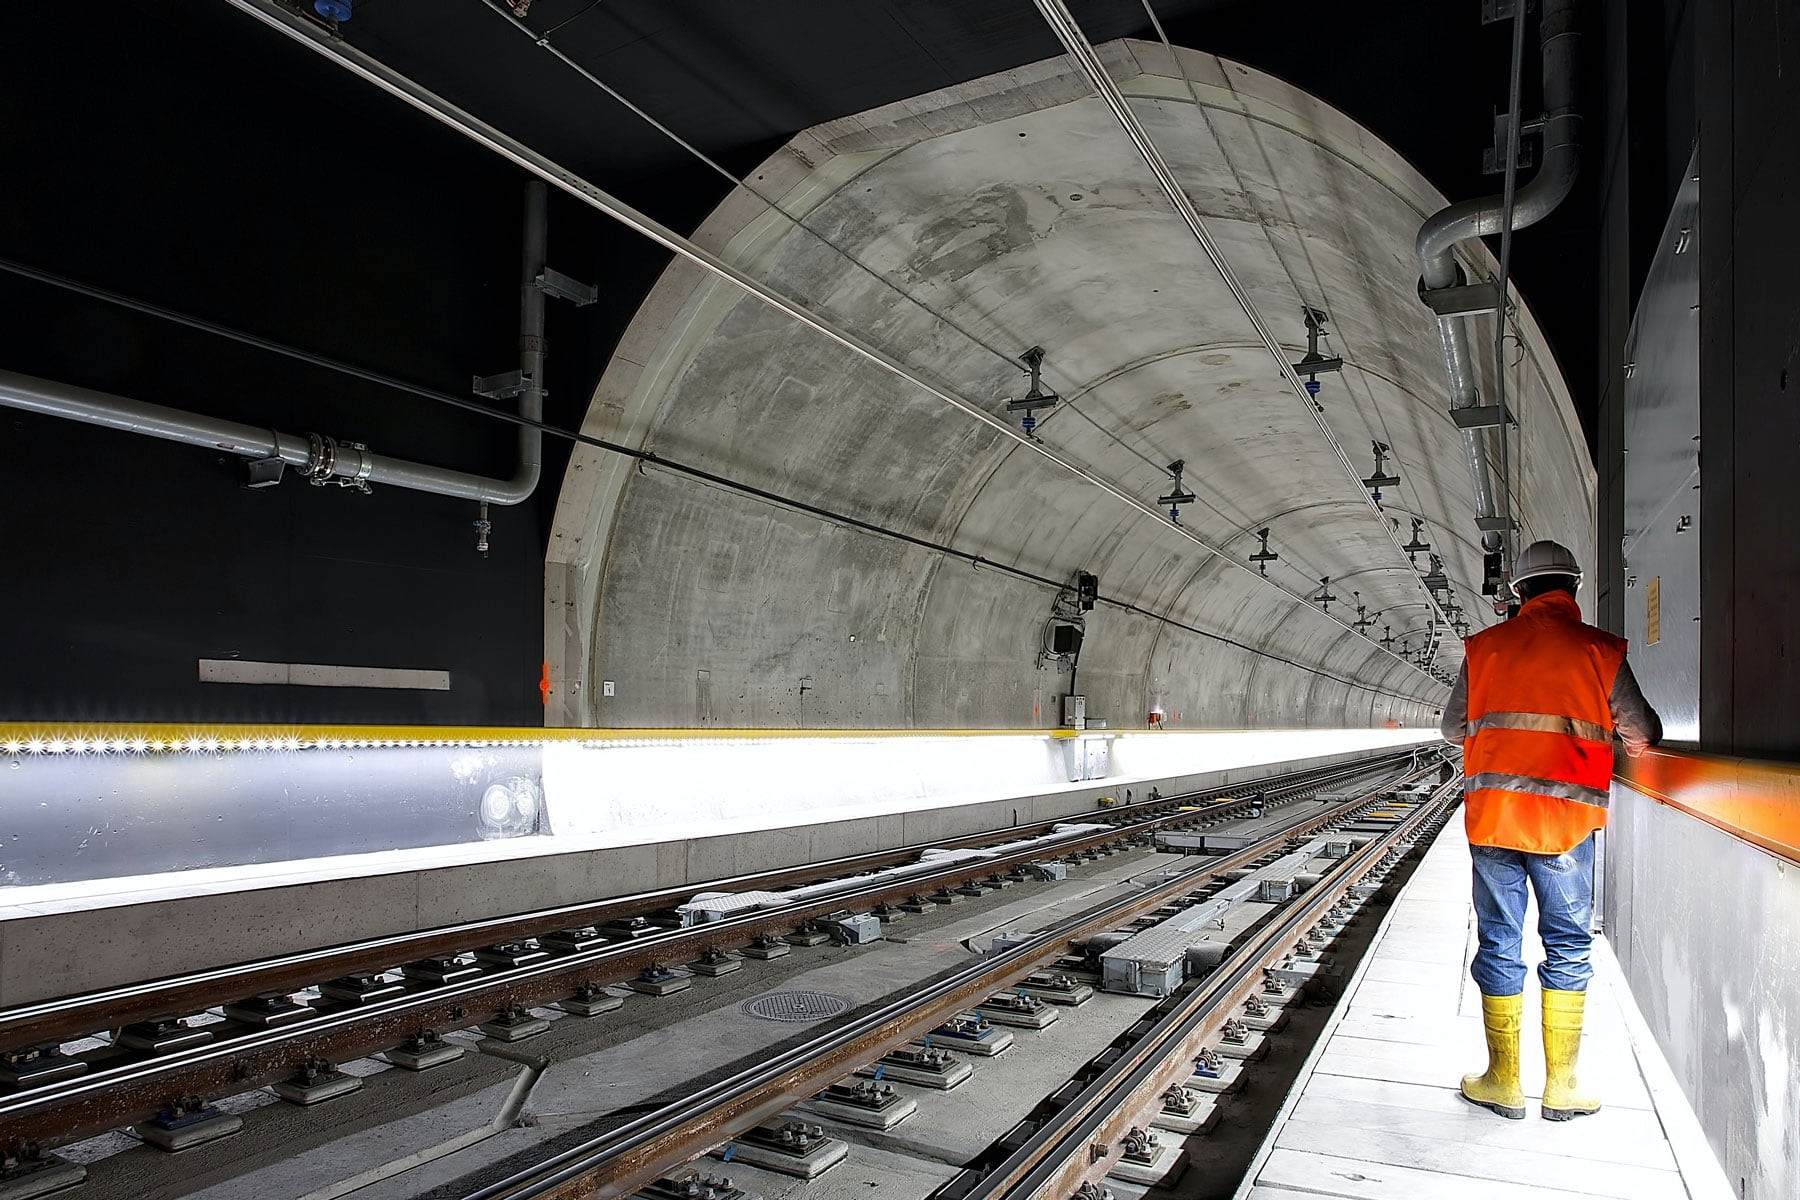 tunnel project for public infrastructure